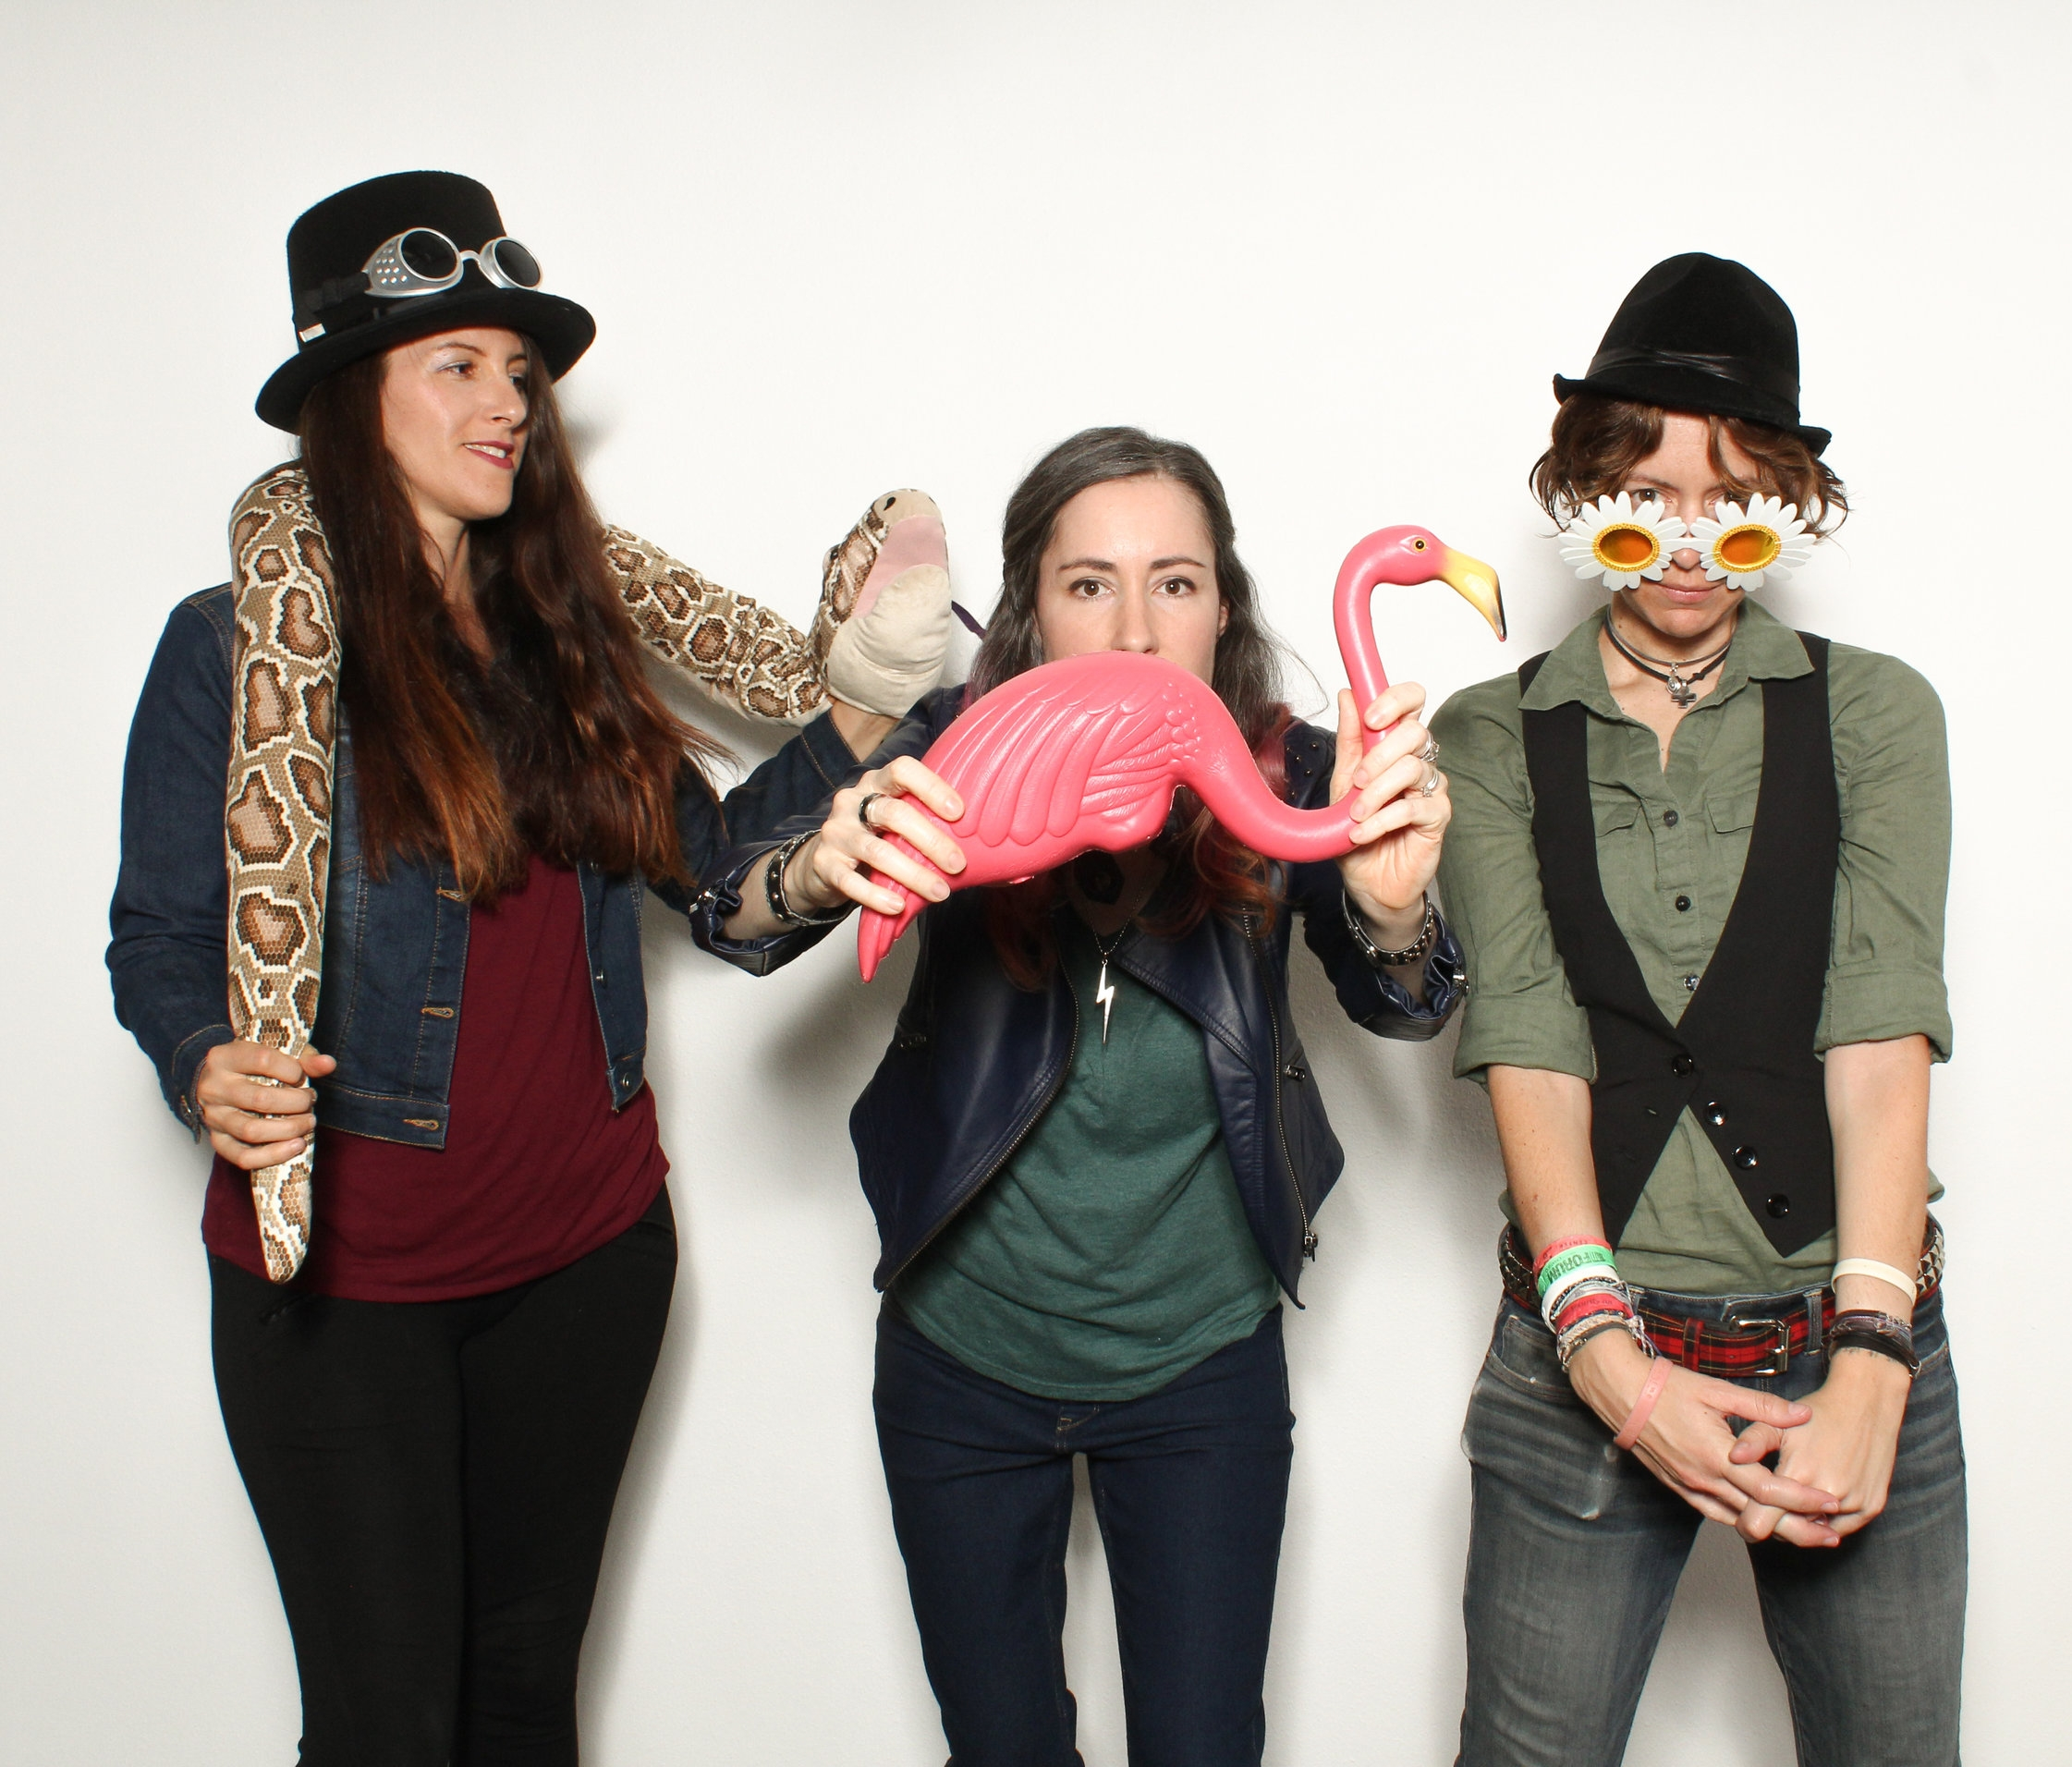 PHOTO BY  FLICKER PHOTOBOOTH